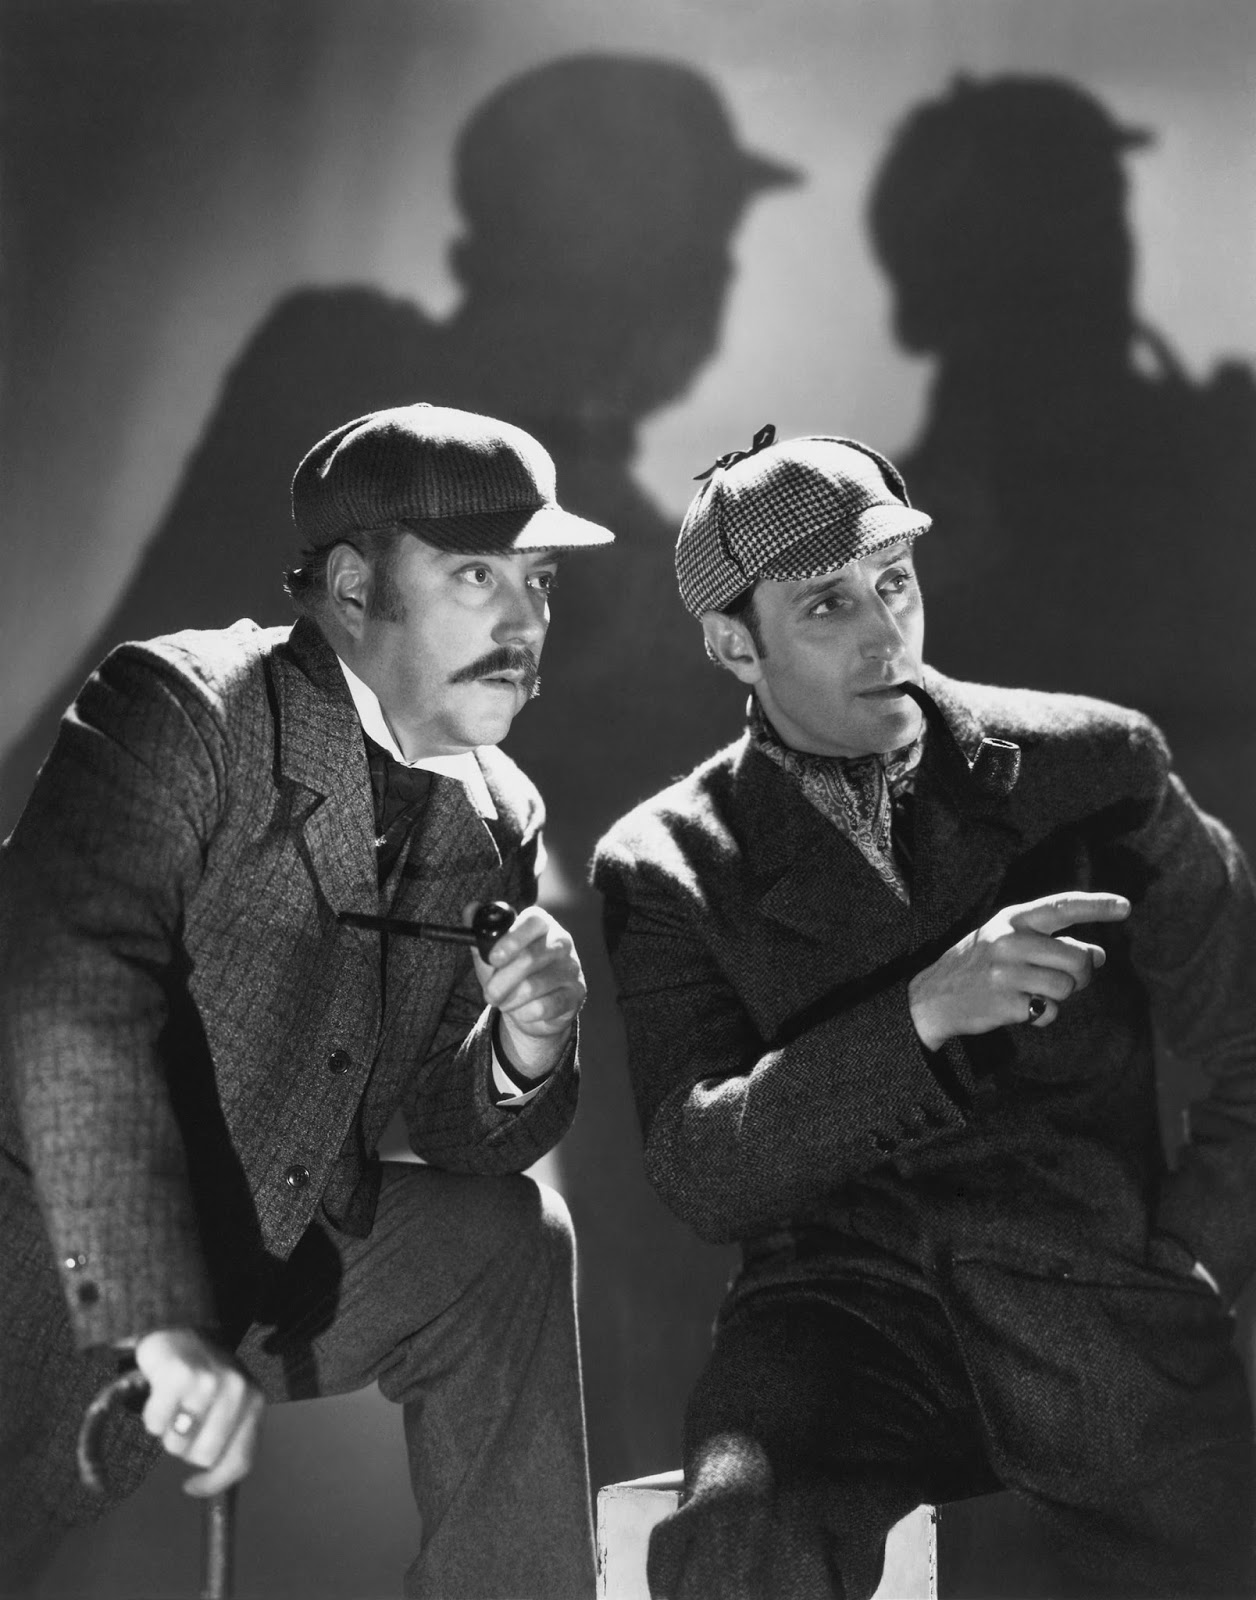 Holmes and Watson in the Great War: The Decorated Duo of Rathbone and Bruce